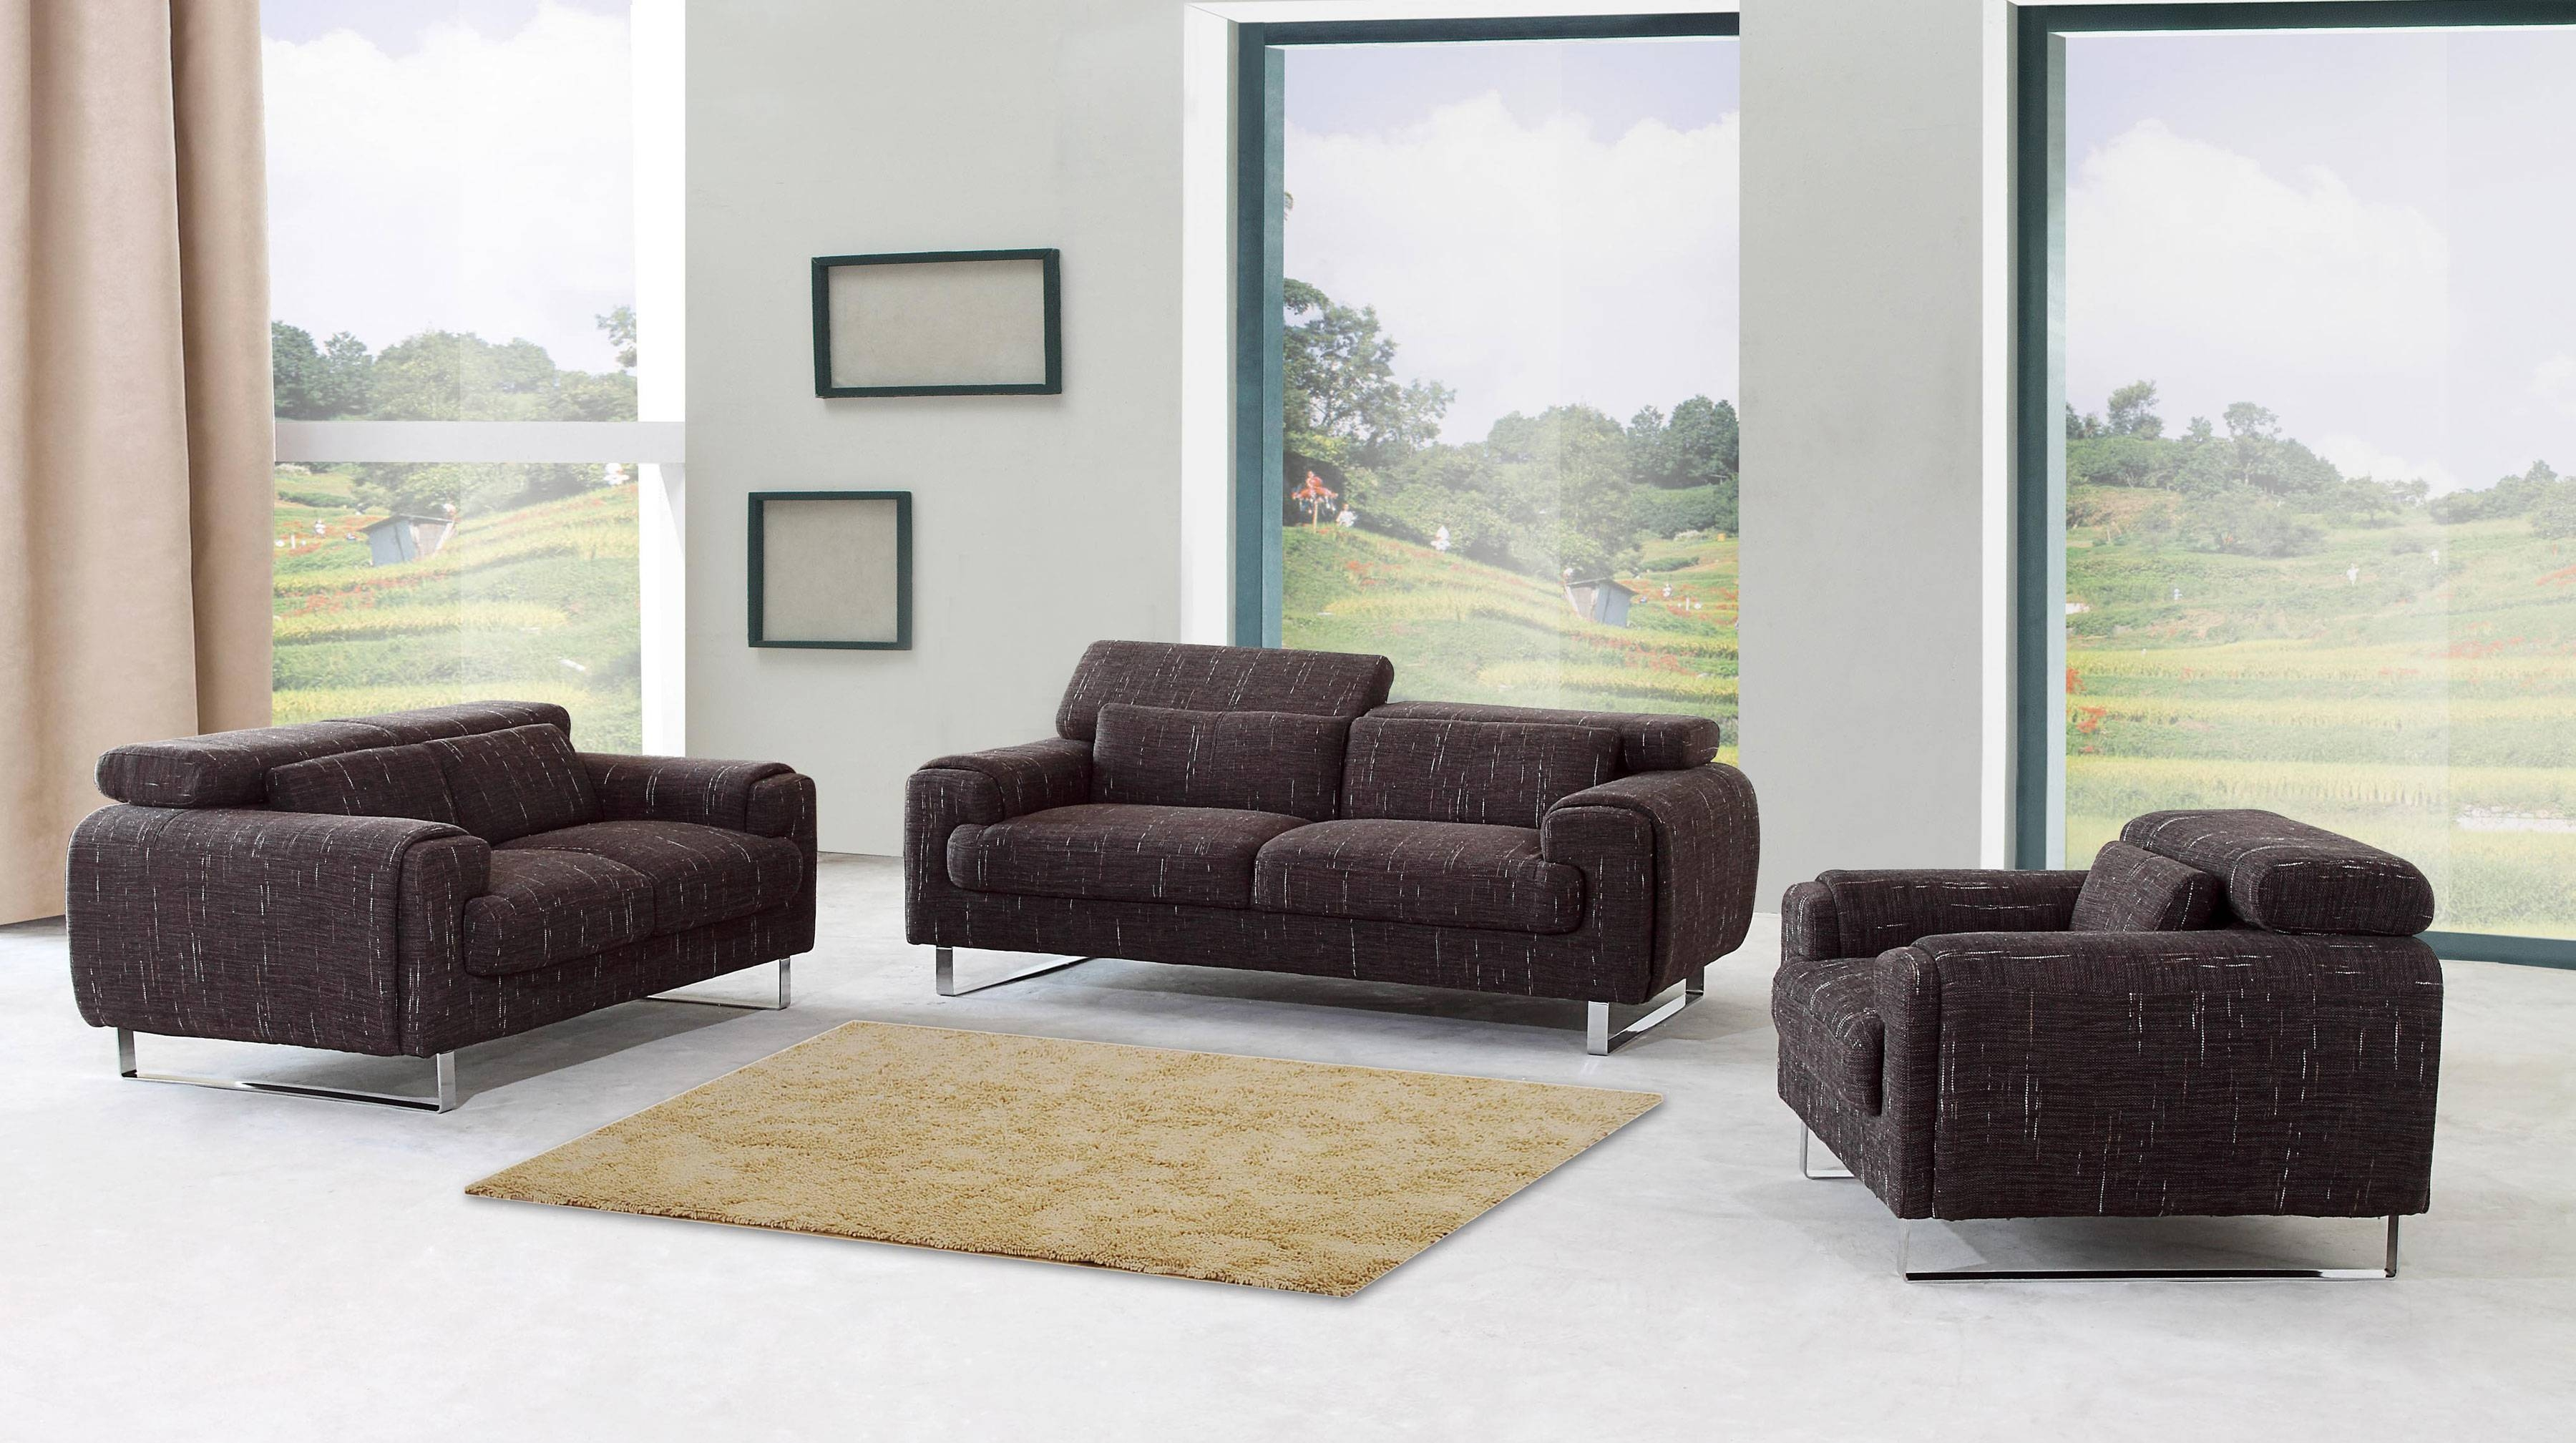 Modern Living Room Sets, Mesmerizing 50 Modern Living Room intended for Living Room Sofa Chairs (Image 13 of 15)